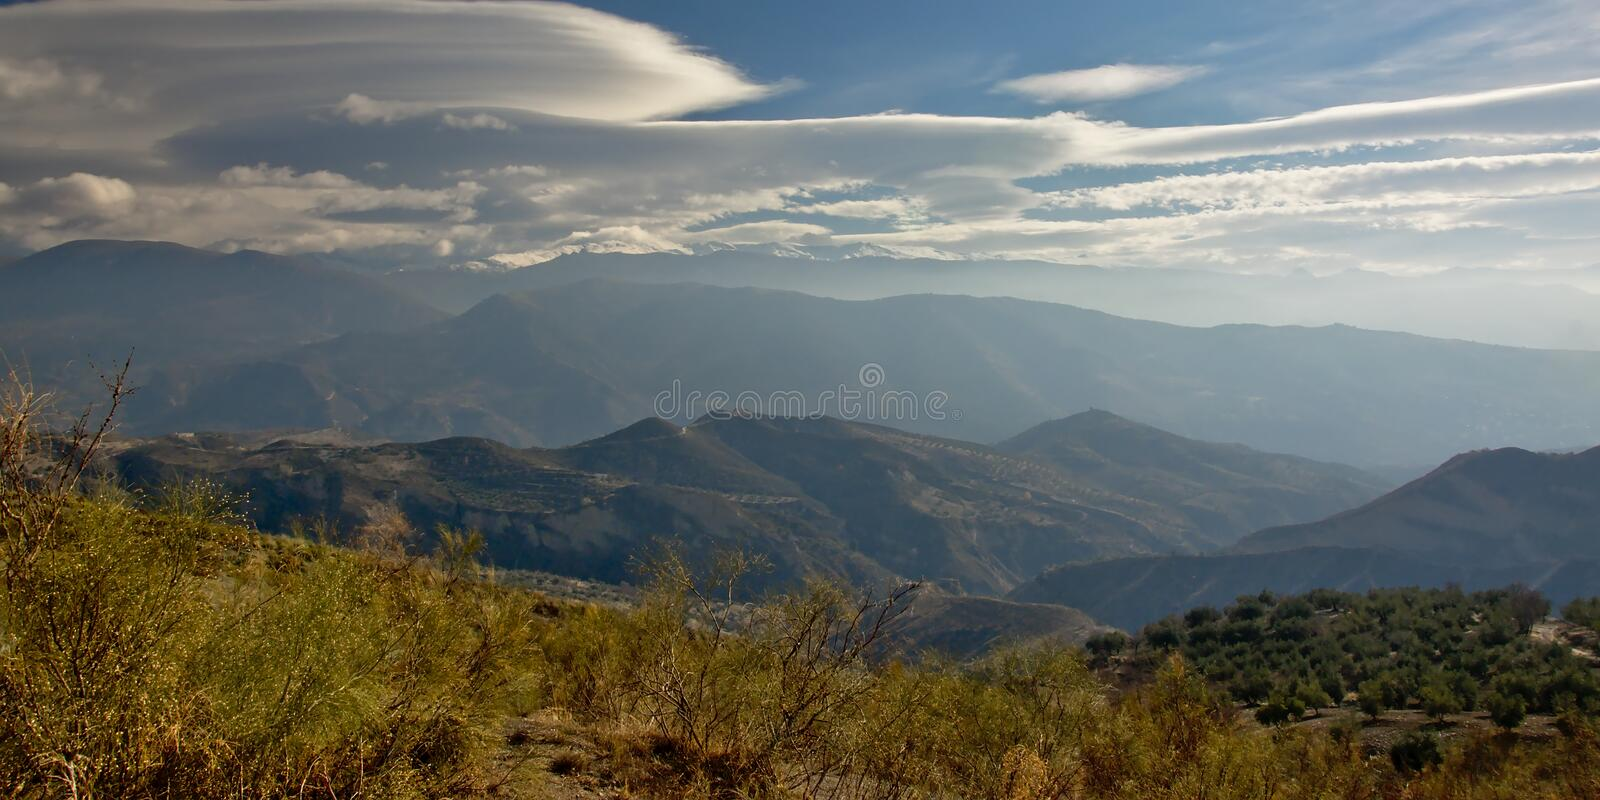 Sierra Nevada mountain landscape under a cloudy sky. Layers of Sierra Nevada mountains, lower ones with vegetation, the highest with snow under a cloudy sky stock photography